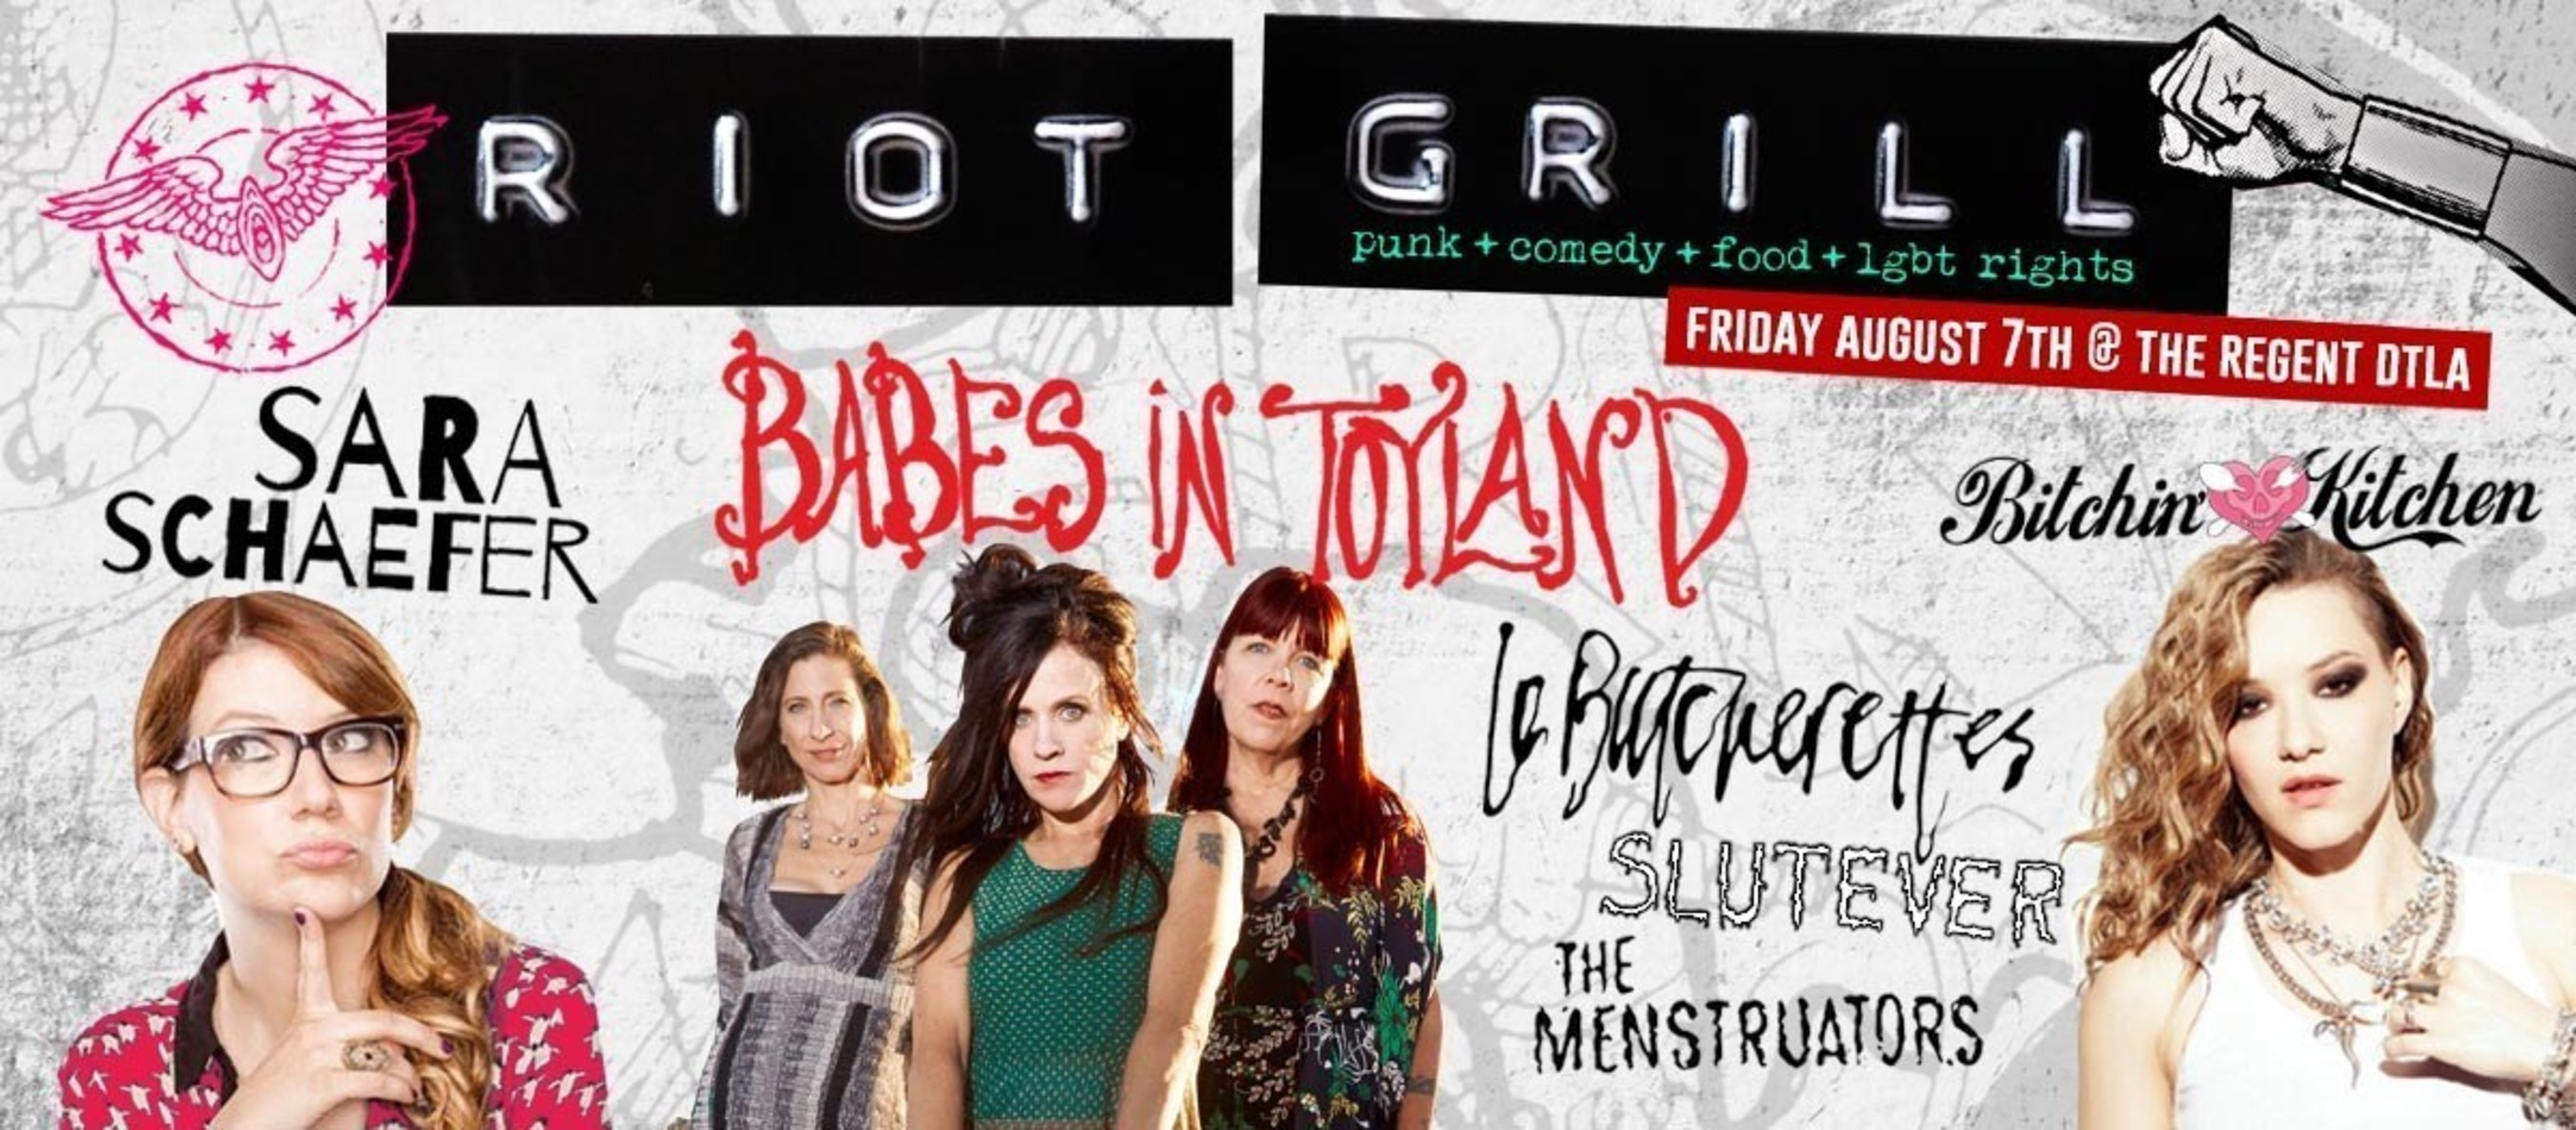 RIOT GRILL: Feminist Punk Rock, Food and Comedy Festival for LGBT Rights created by Celebrity Chef Nadia G Hits  ...